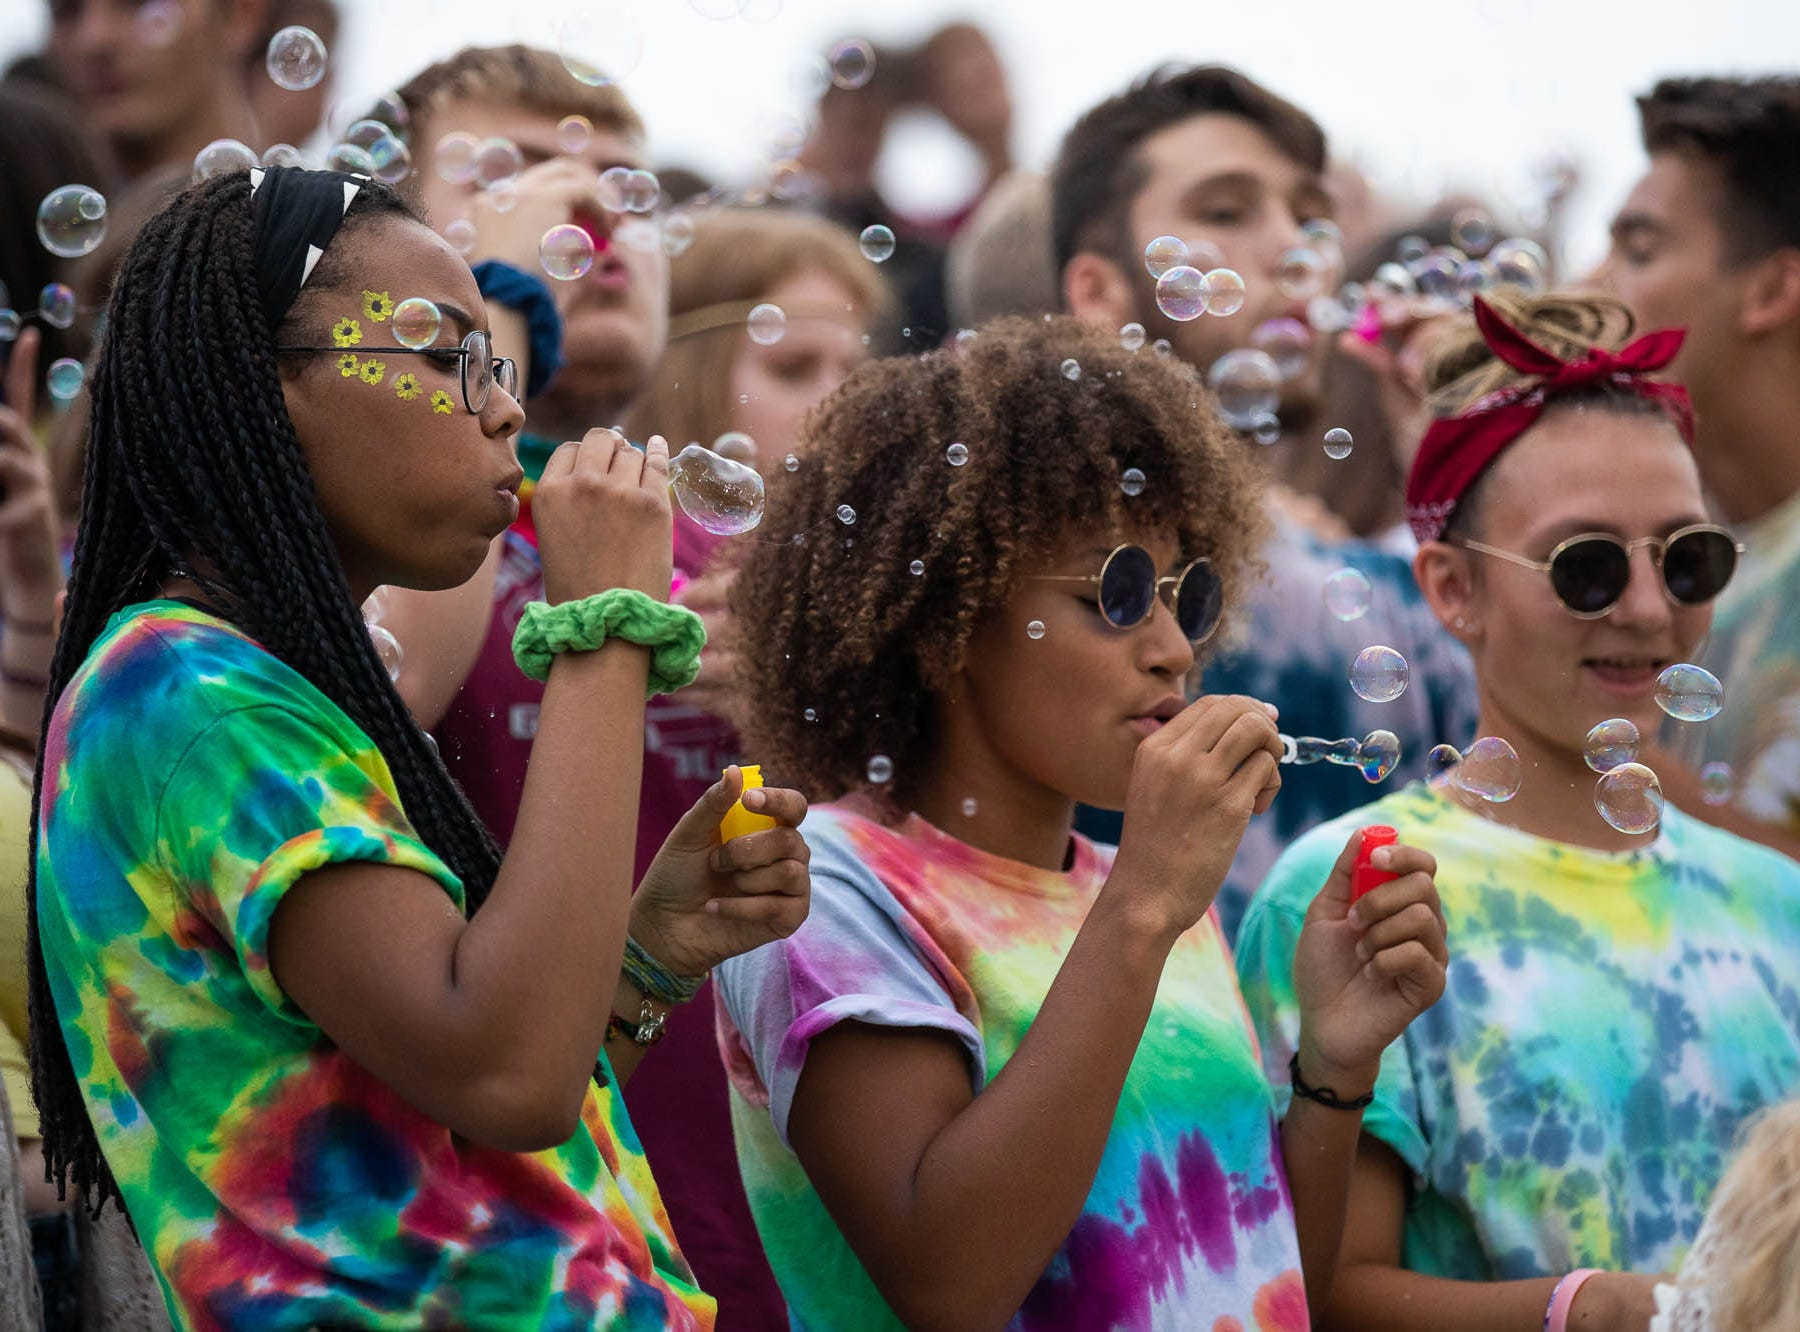 The Shippensburg student section blows bubbles before a football game between Shippensburg and Bermudian Springs, Friday, Sept. 7, 2018, at Shippensburg High School.